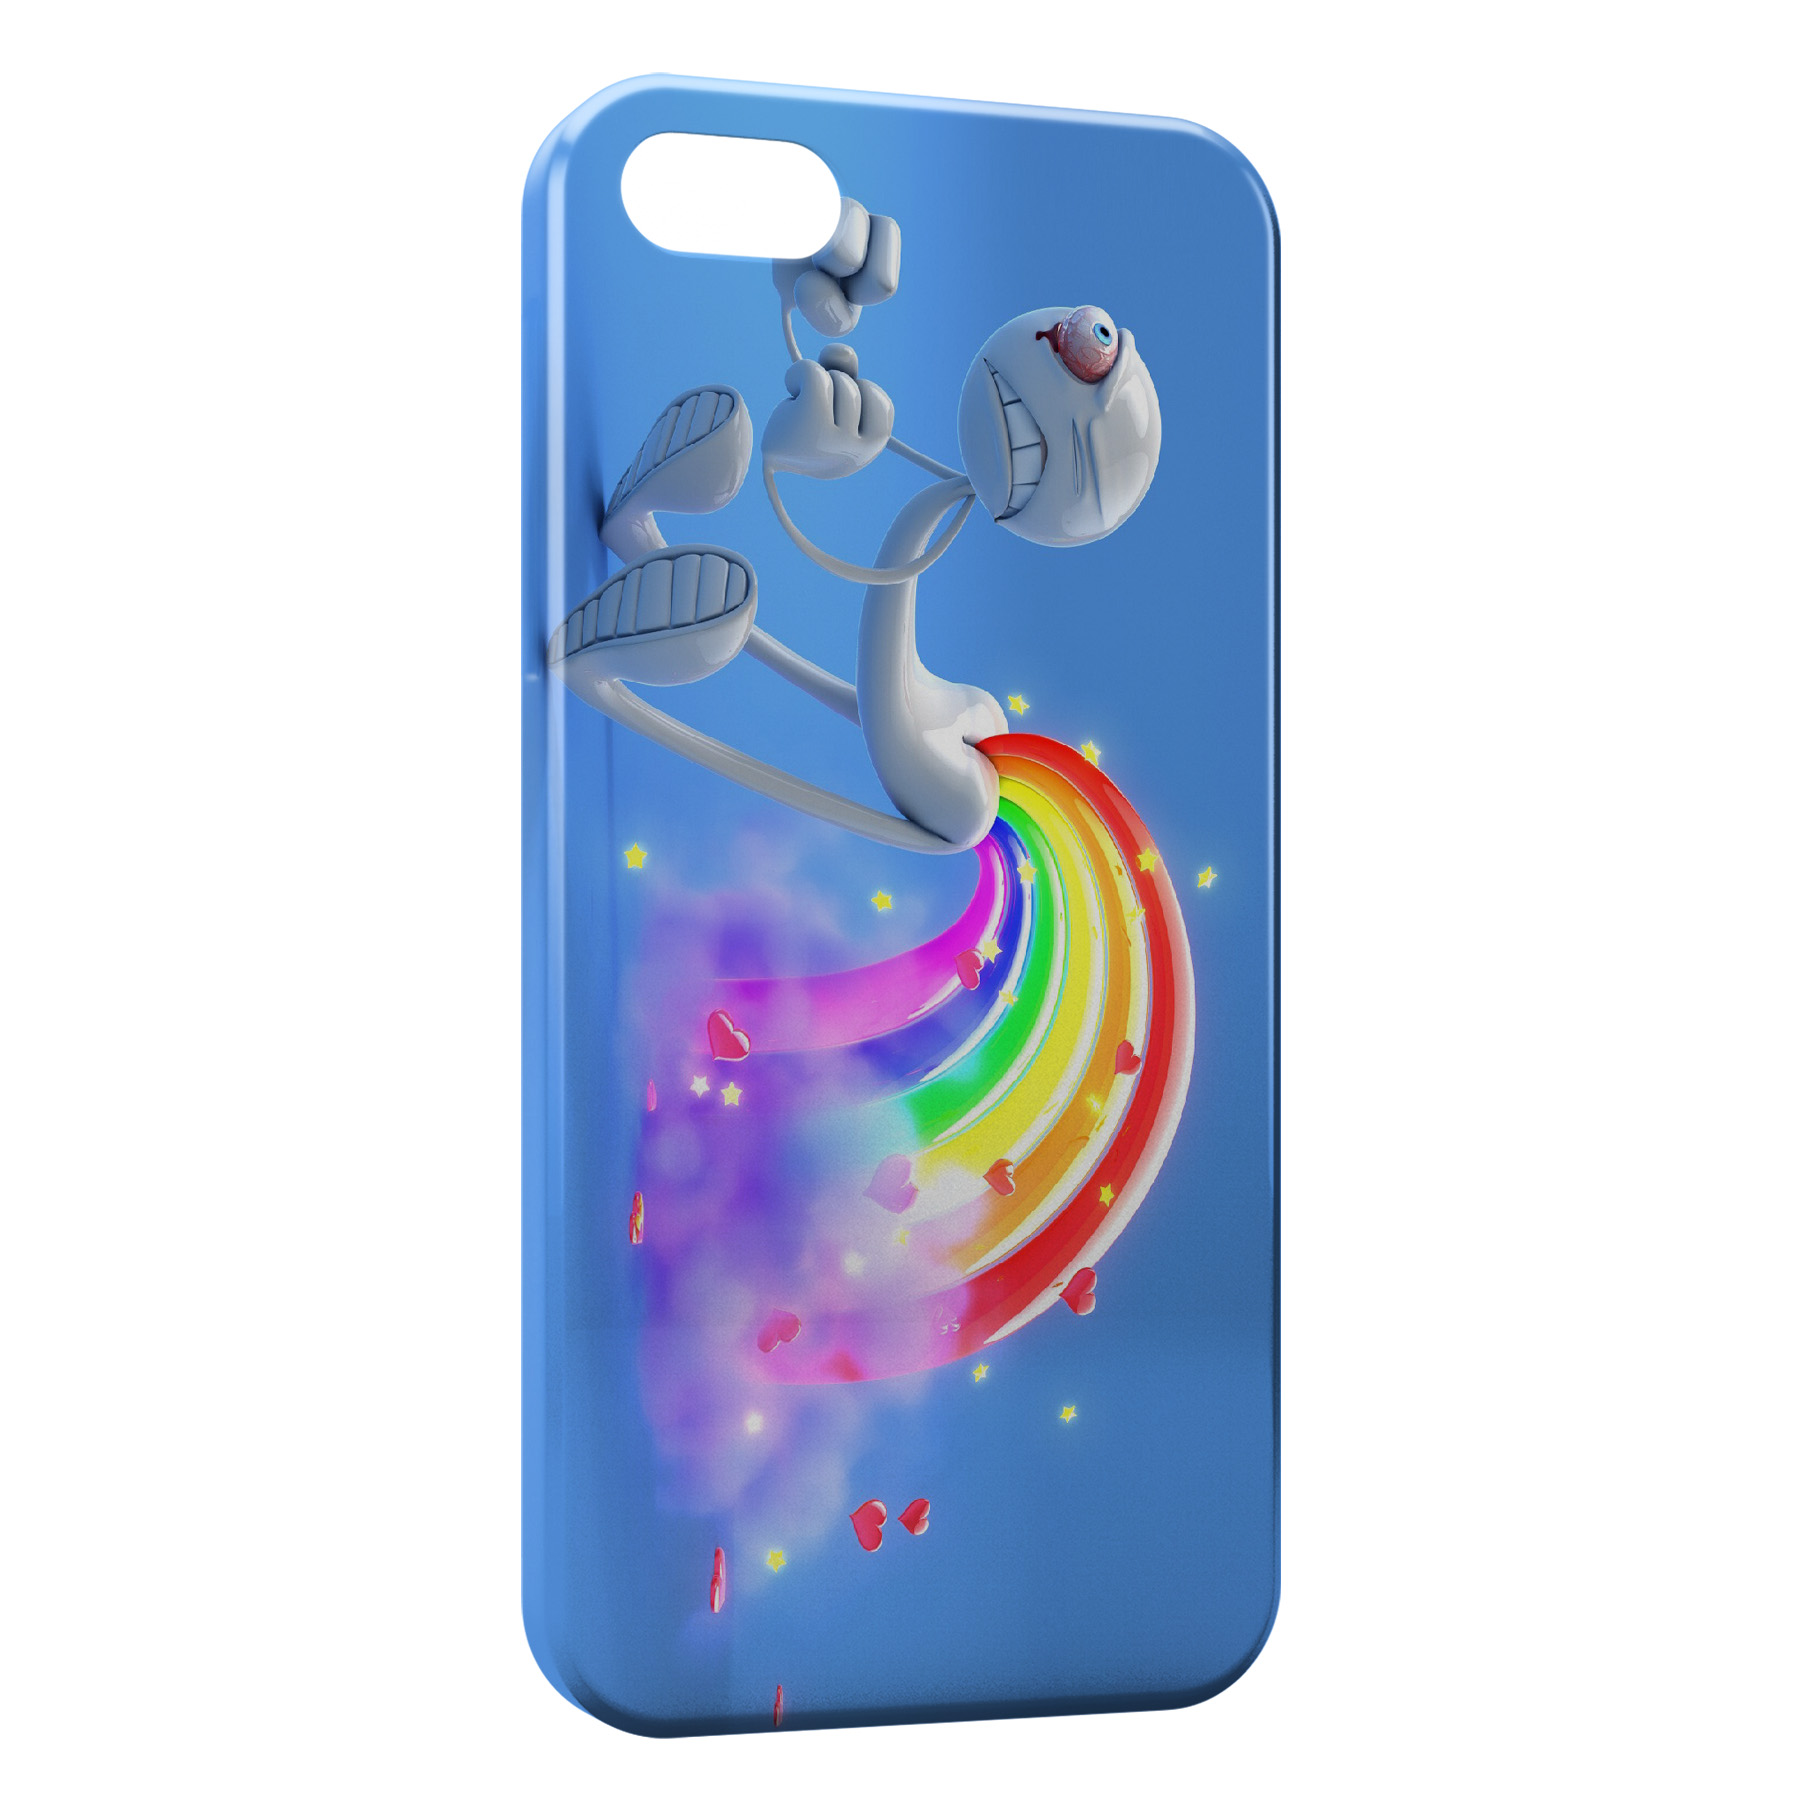 coque iphone 4 arc en ciel